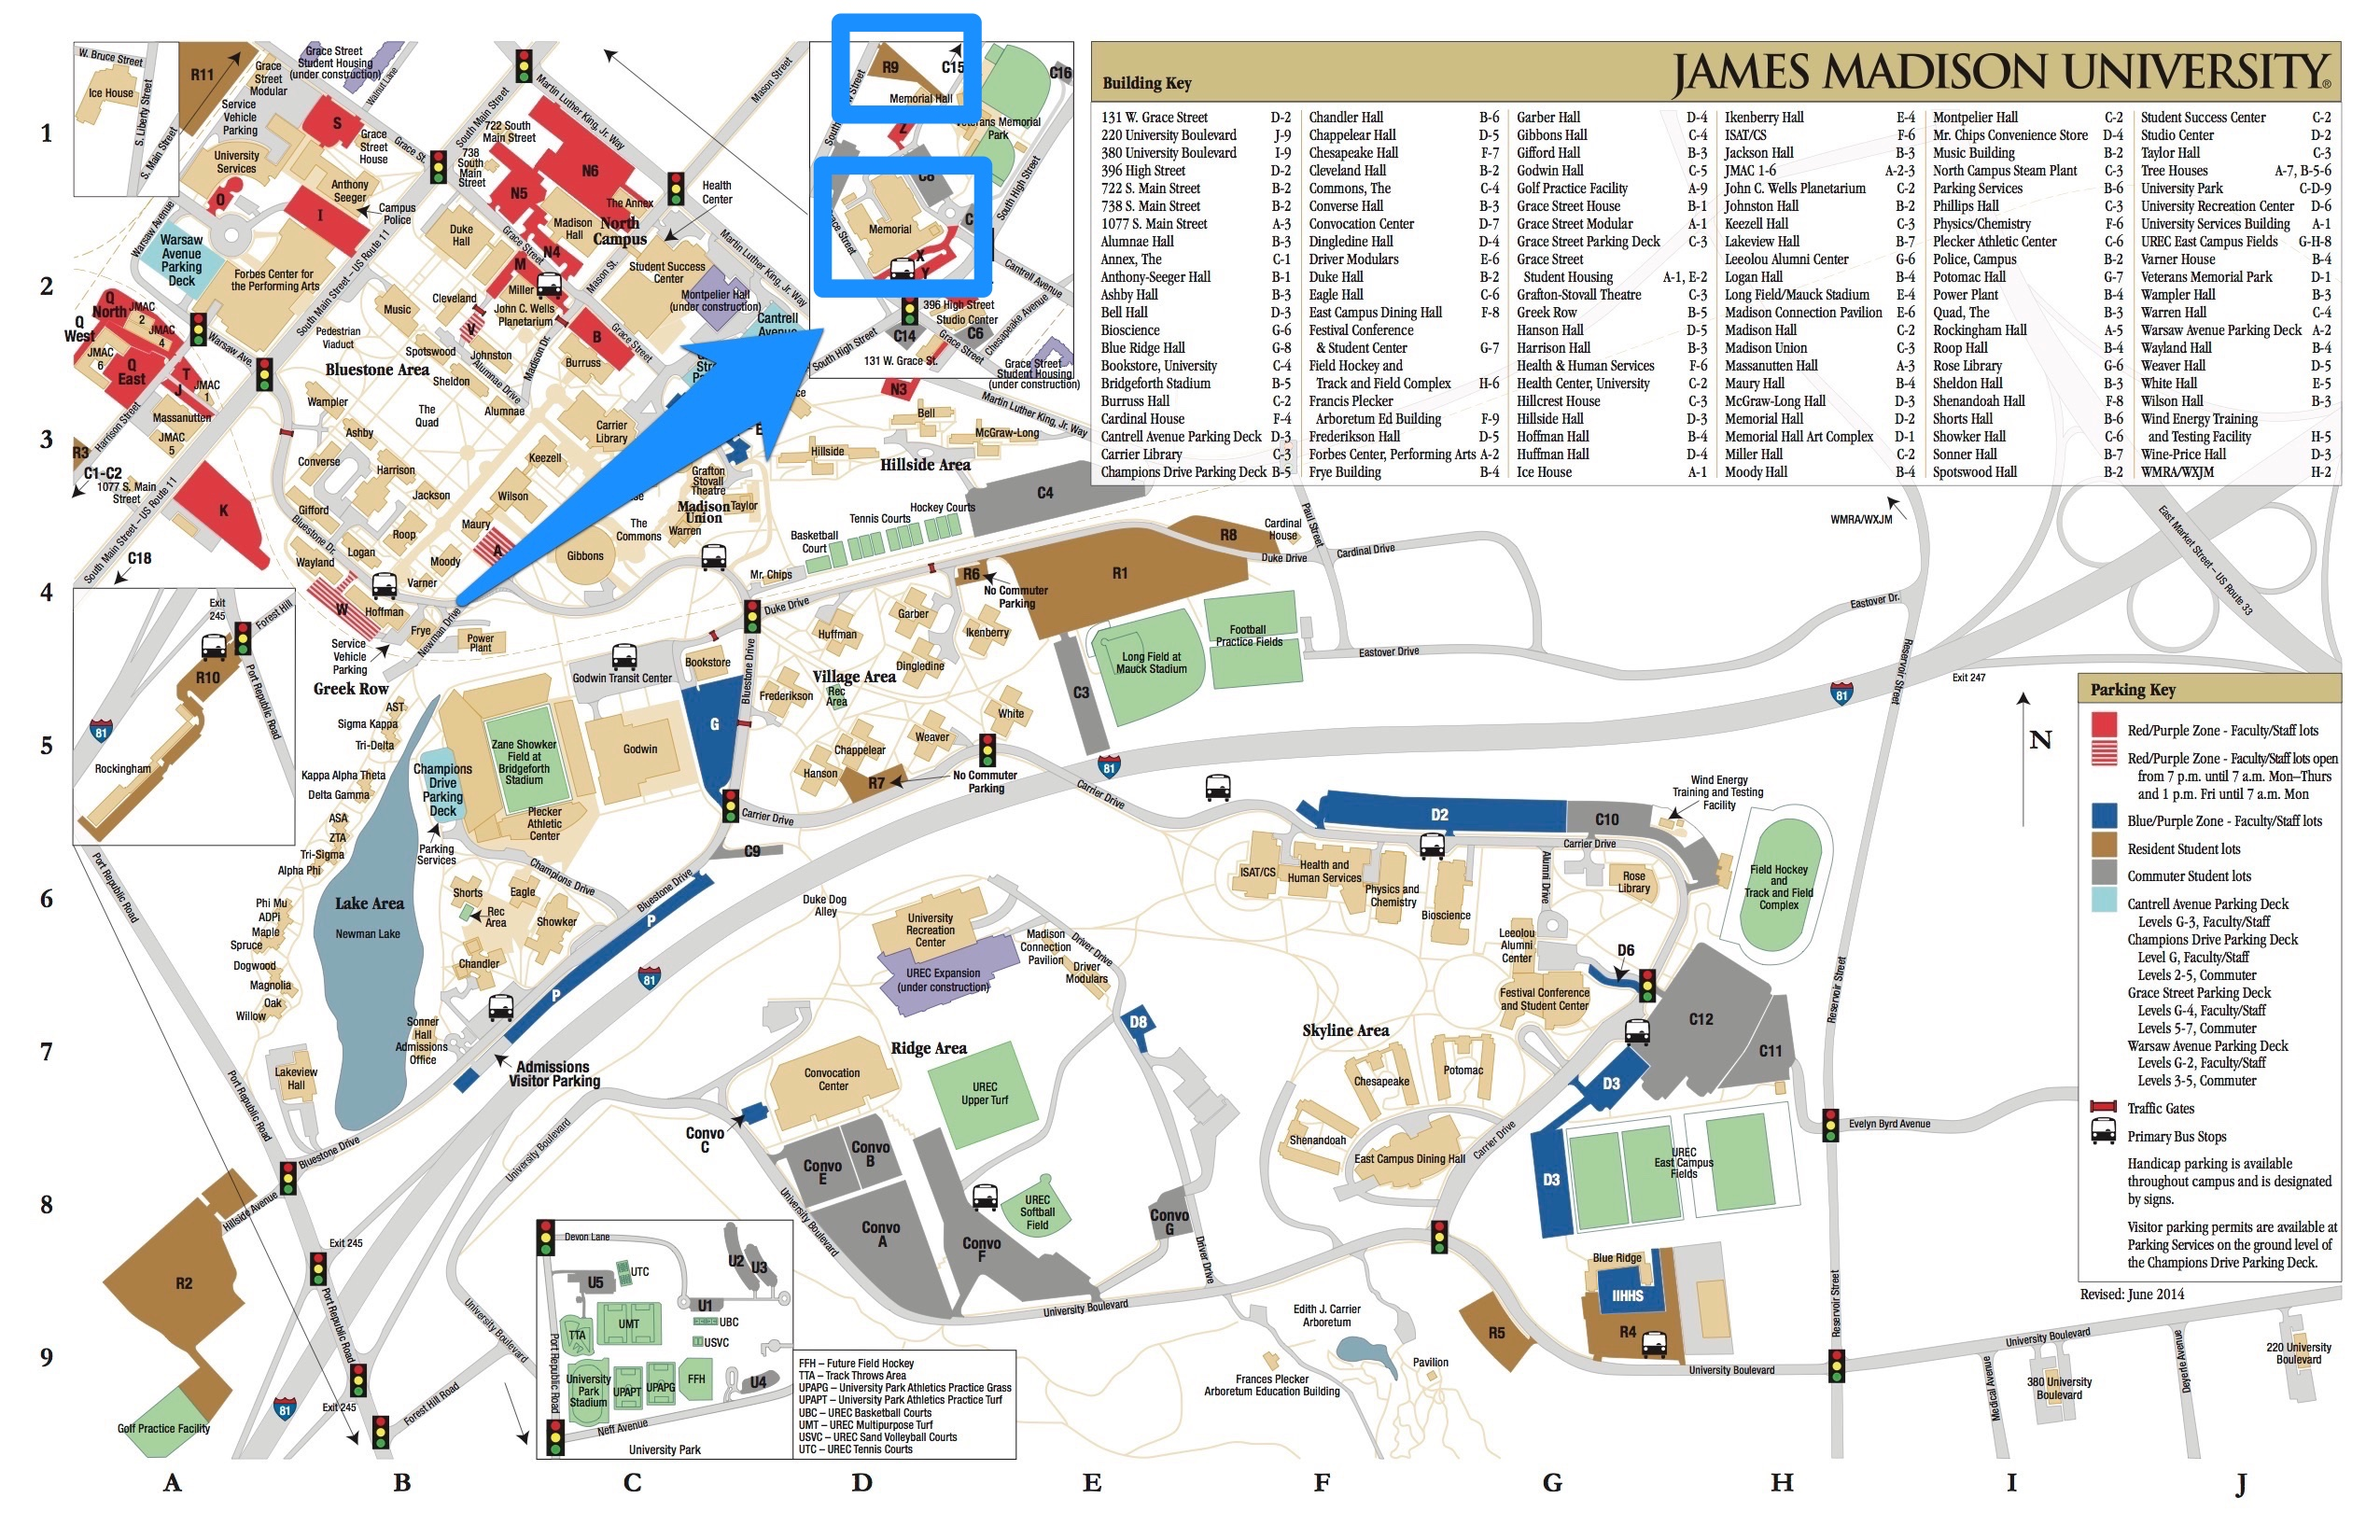 Jmu Parking Map Brainstorm 2015: Make and Take